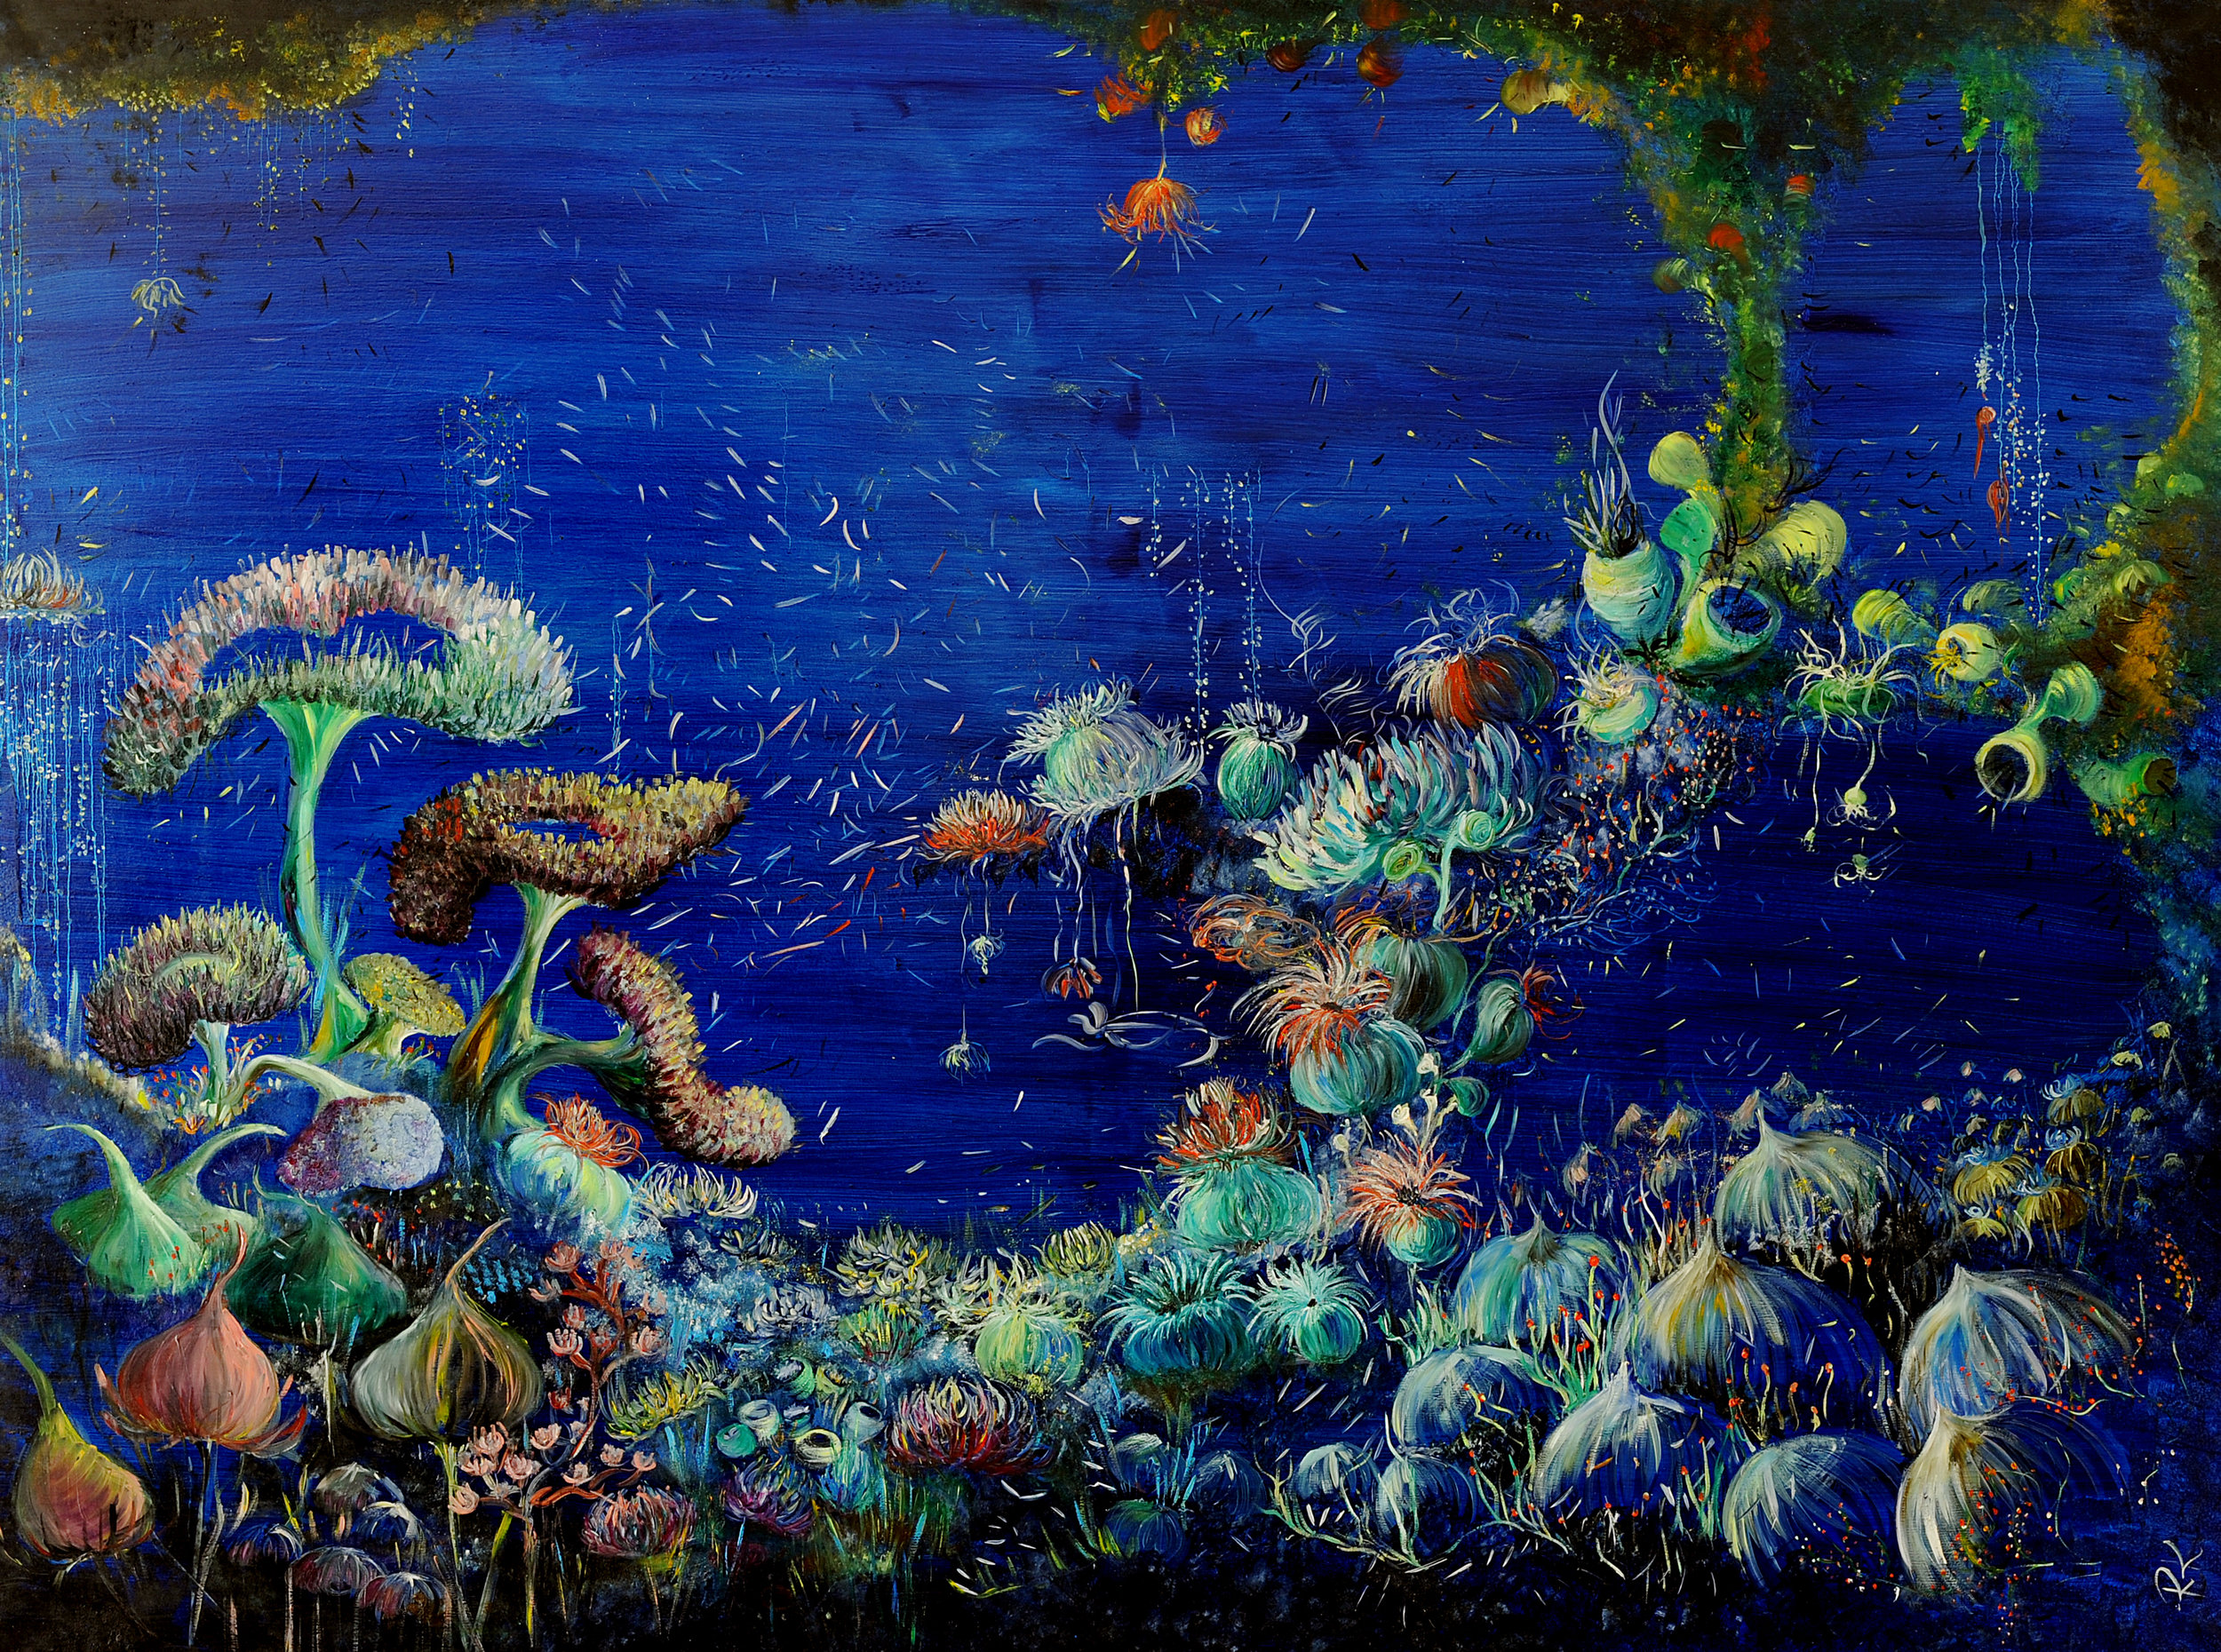 Garden of Good and Eden I.  The Ocean Collection.  2012. Oil on canvas. 150 x 200 cm